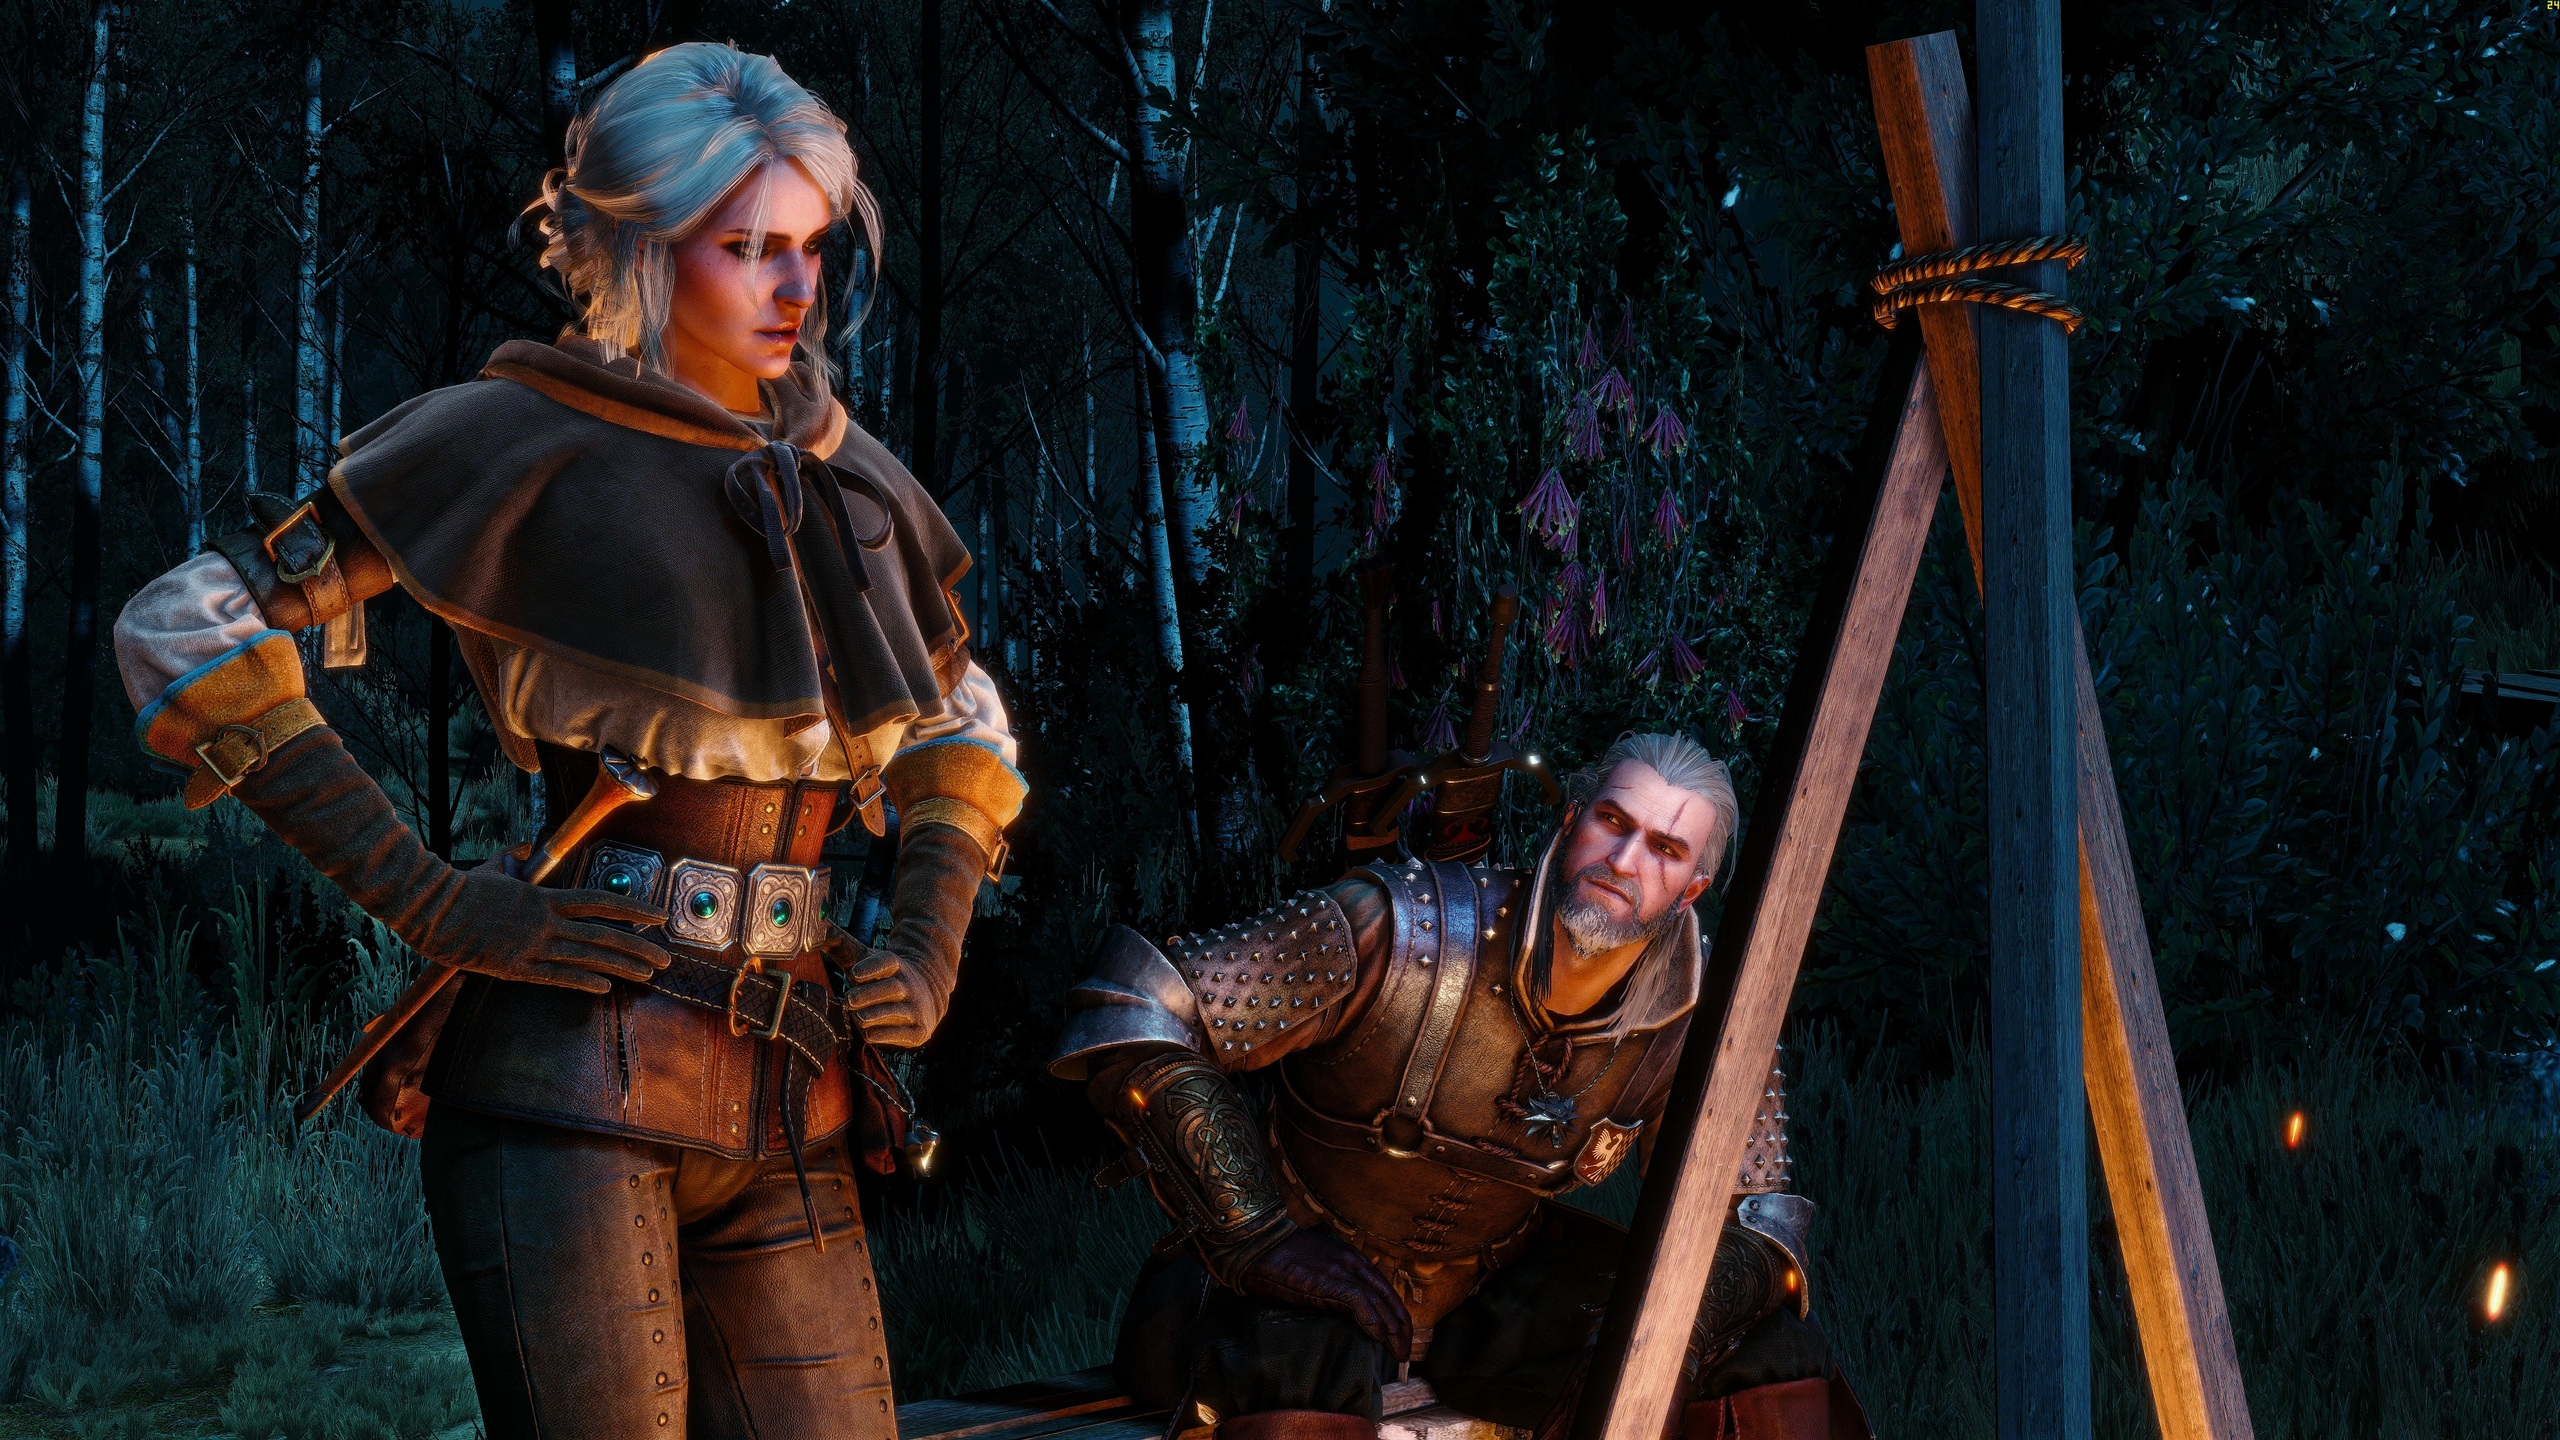 2560x1440 The Witcher 3 Wild Hunt 2020 4k 1440p Resolution Hd 4k